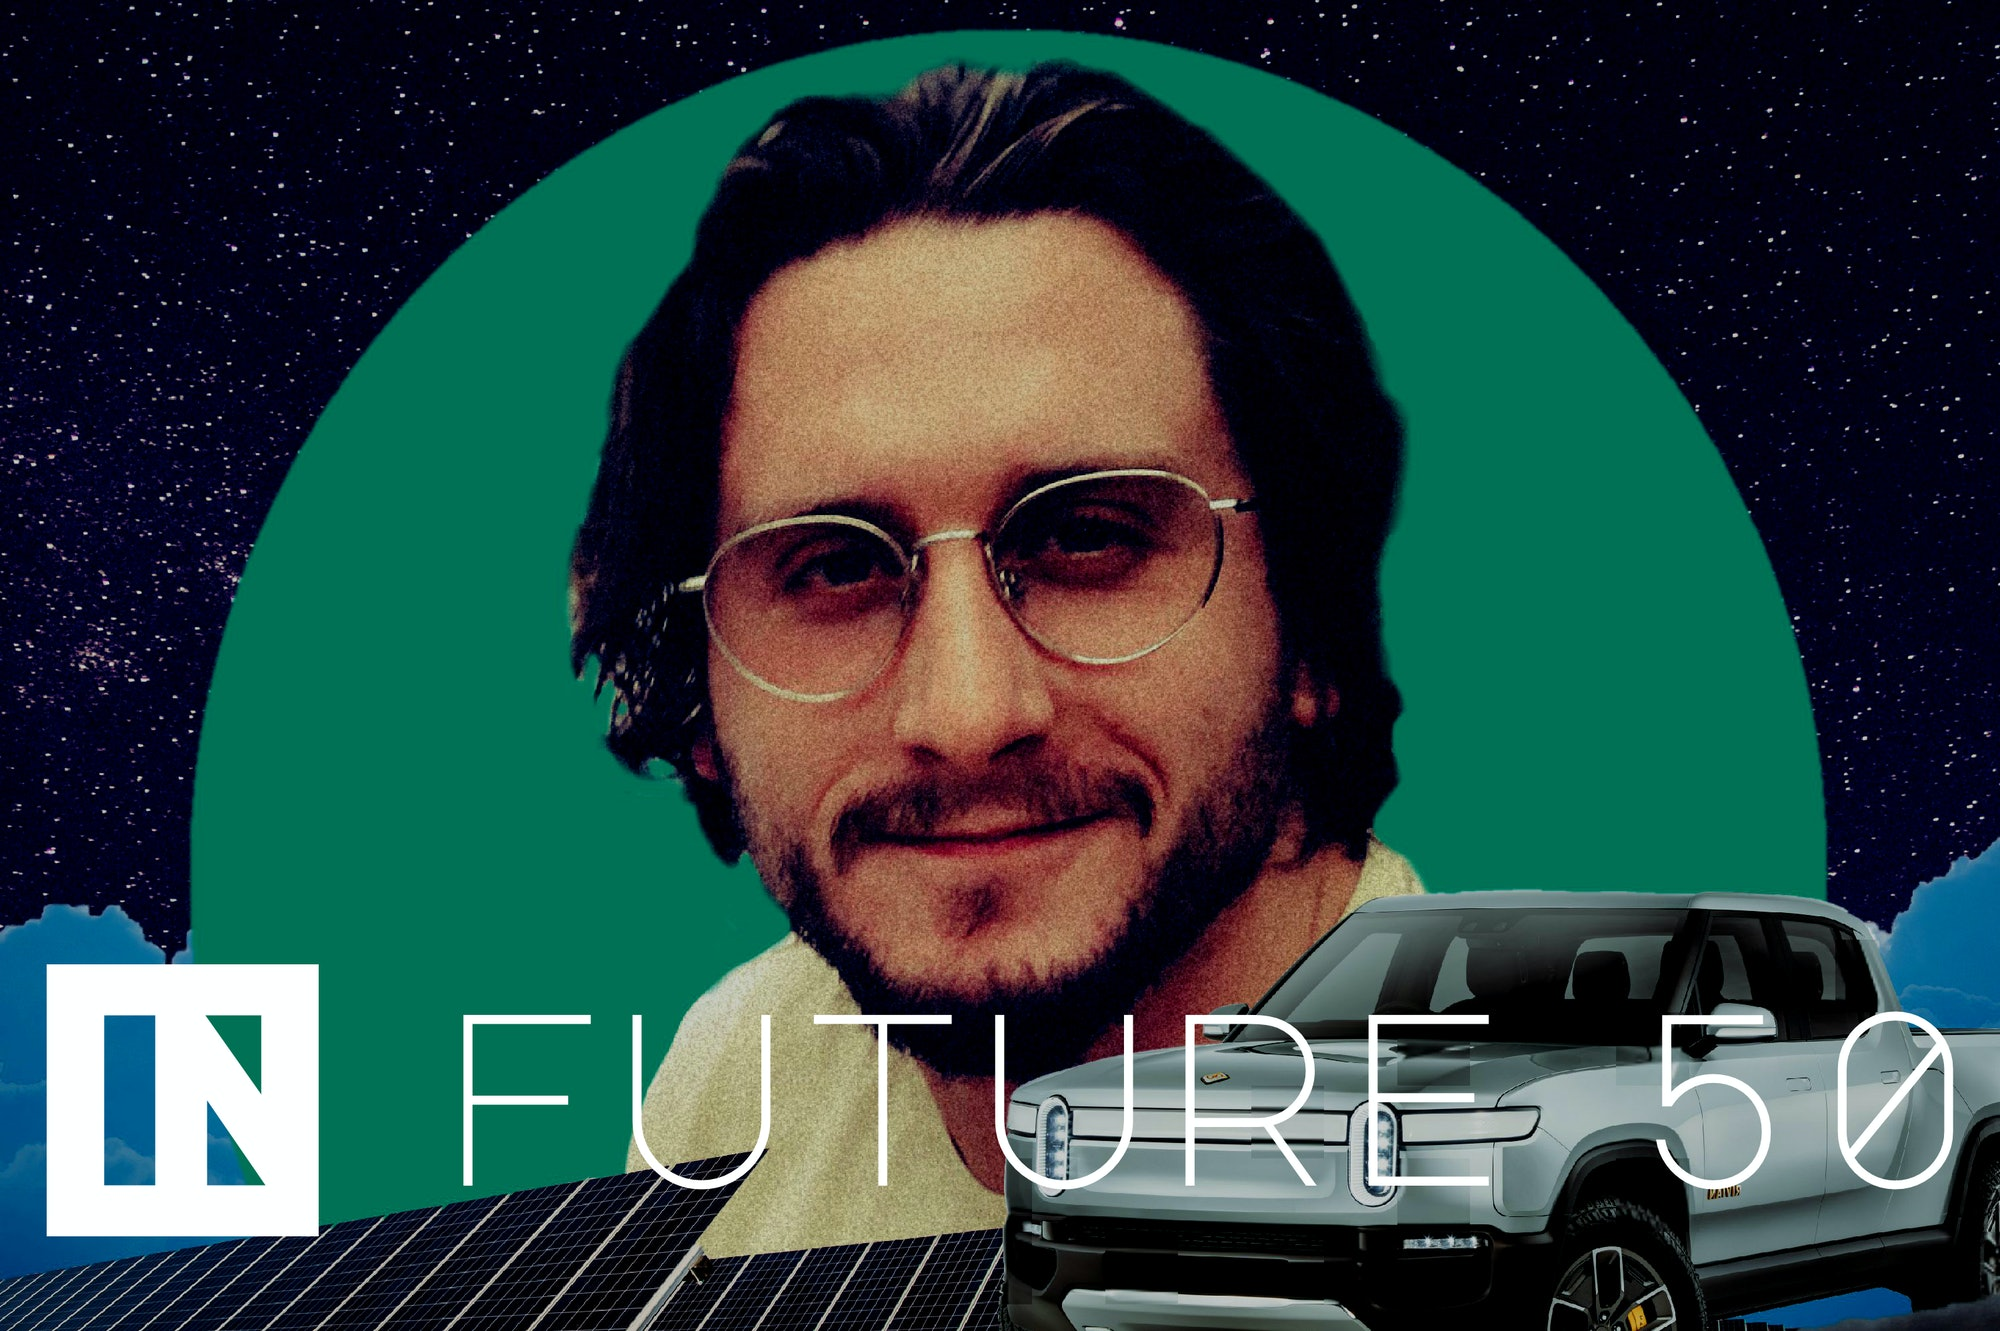 Fred Lambert is a member of the Inverse Future 50.